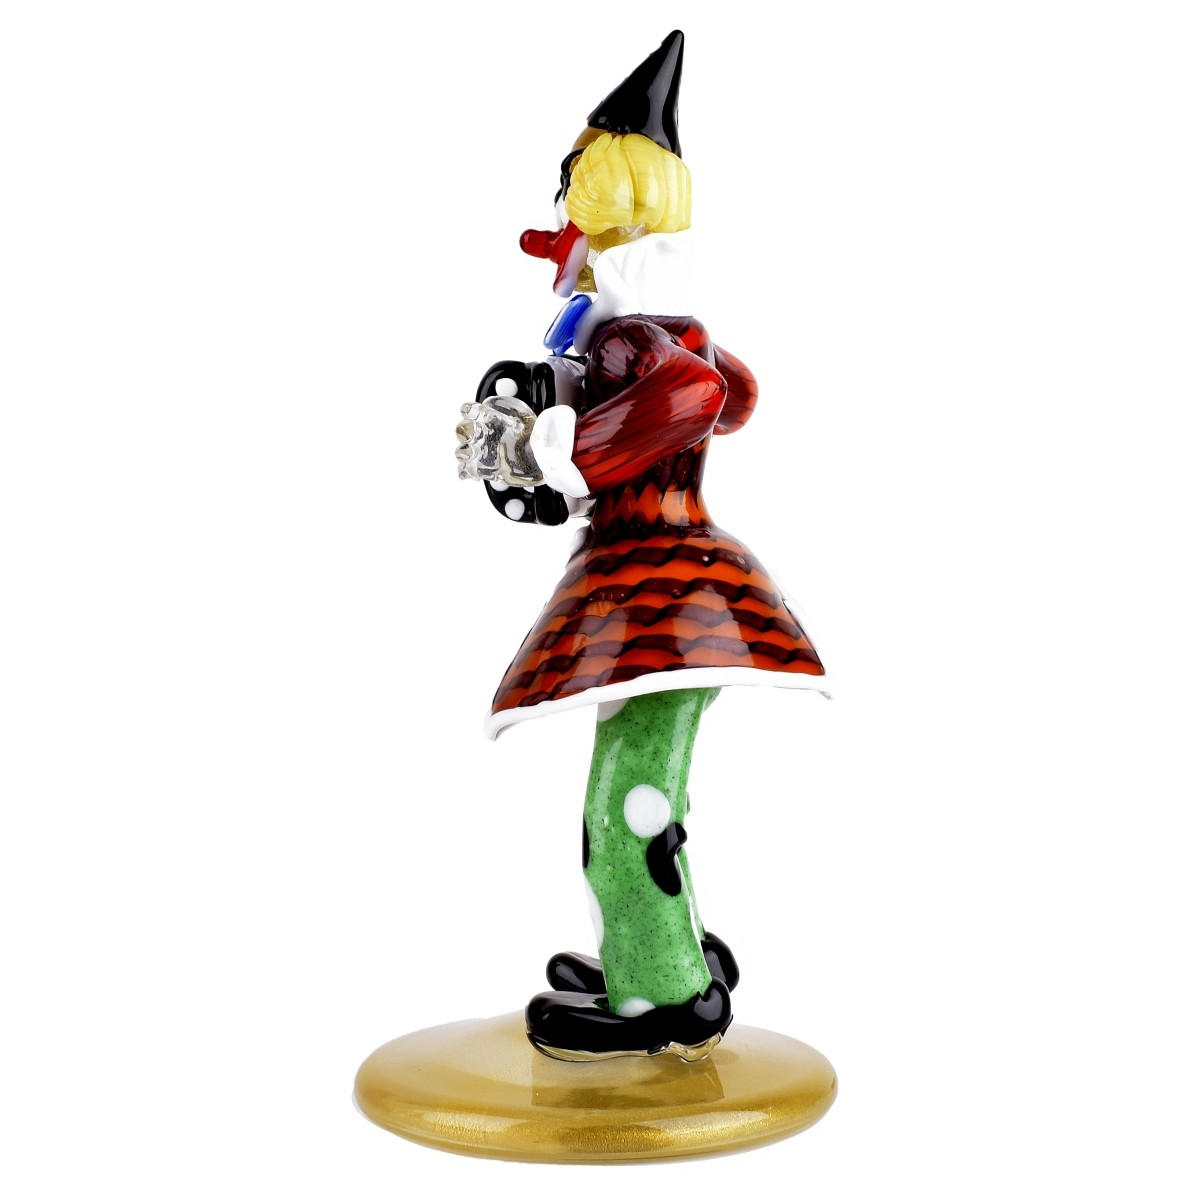 Murano Art Glass Clown Figurine